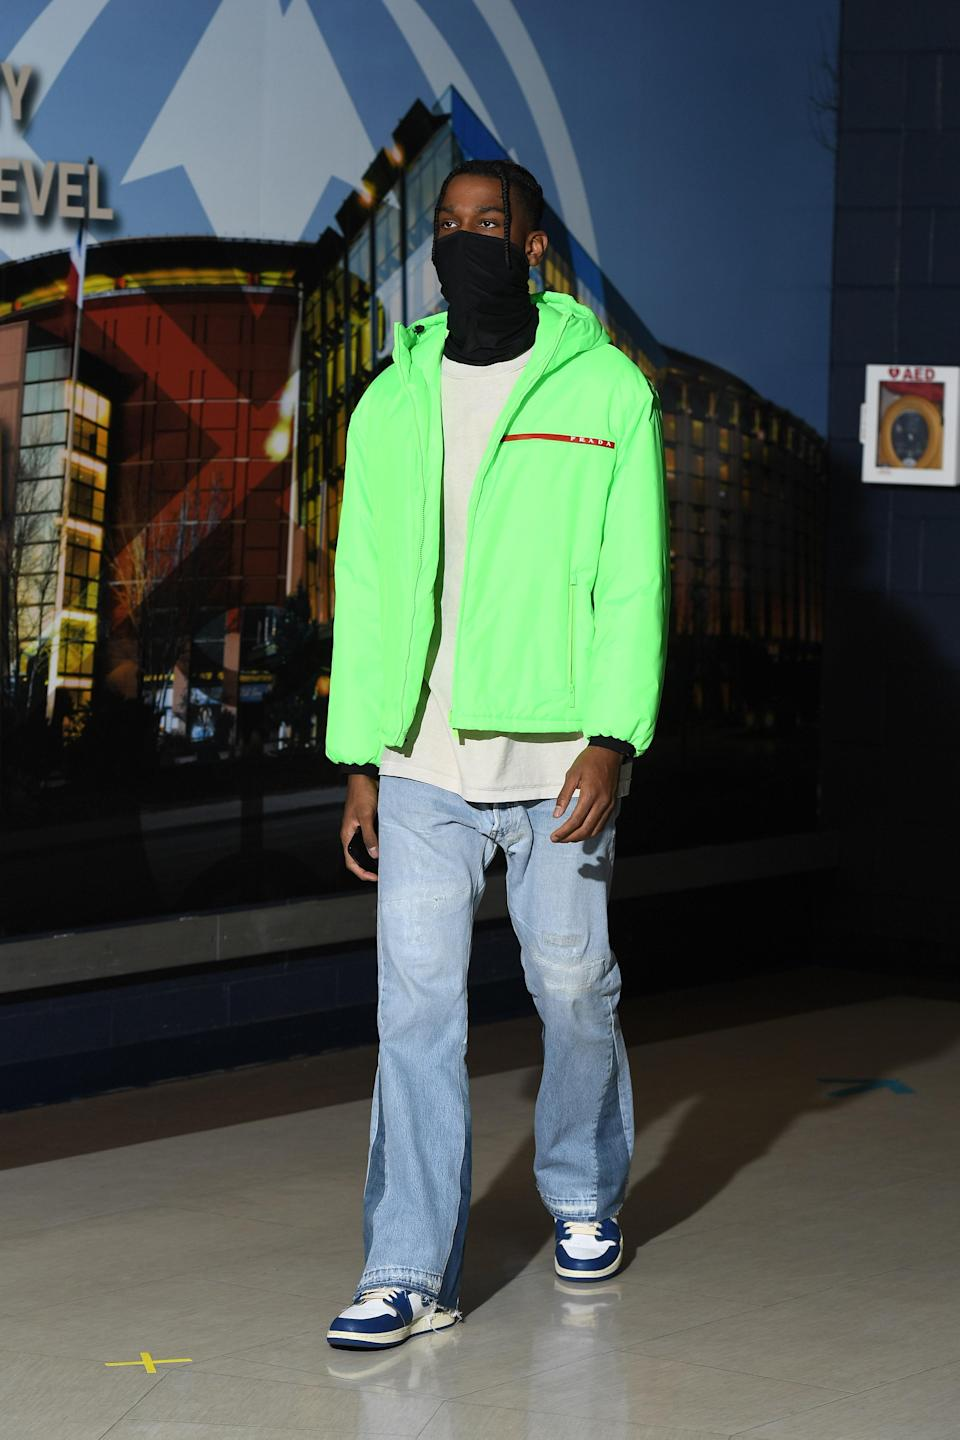 Shai Gilgeous-Alexander of the Oklahoma City Thunder arrives for a game against the Nuggets in Denver, January 19, 2021.